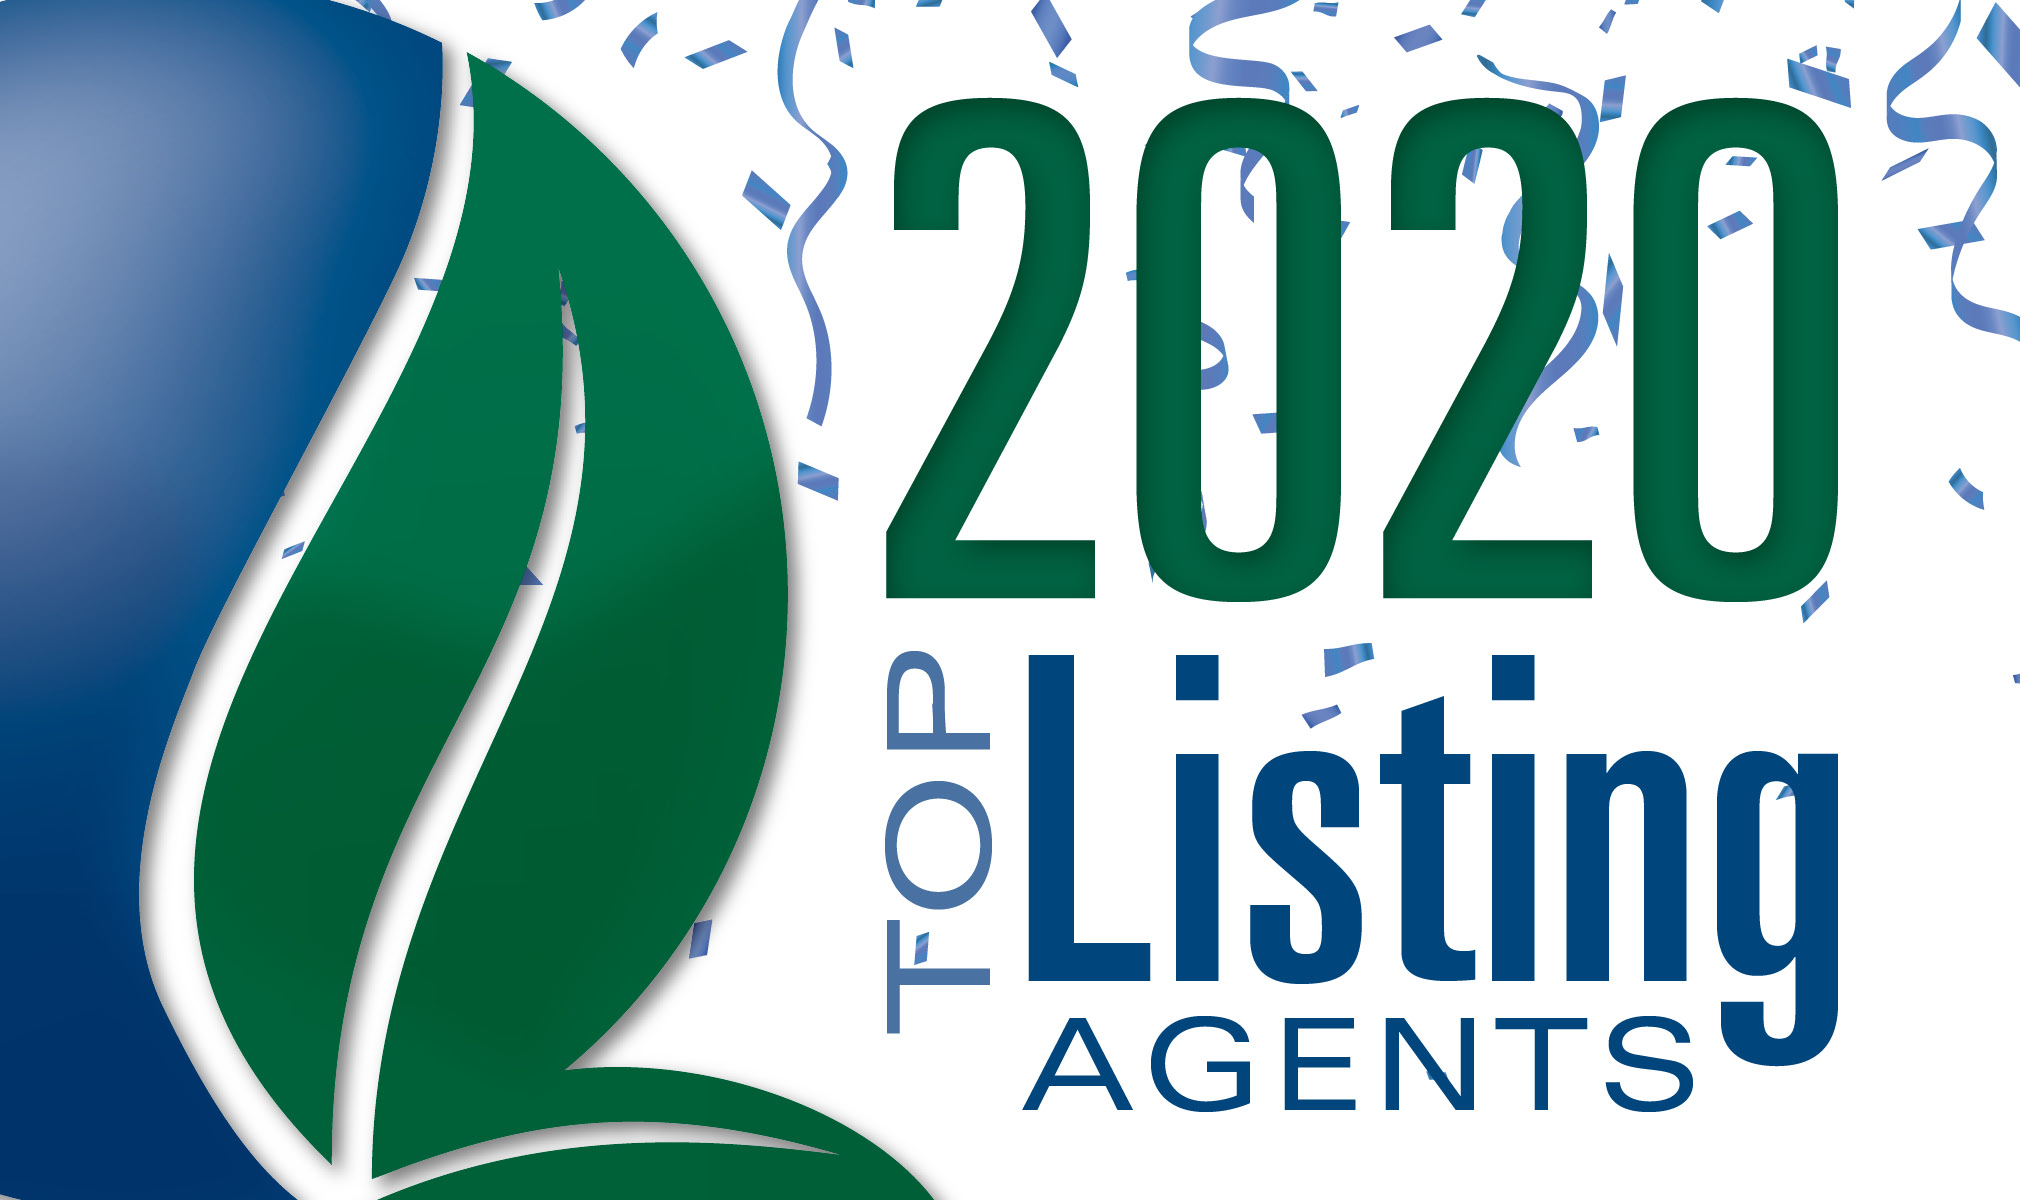 United Country Announces Top Listing Agents of 2020